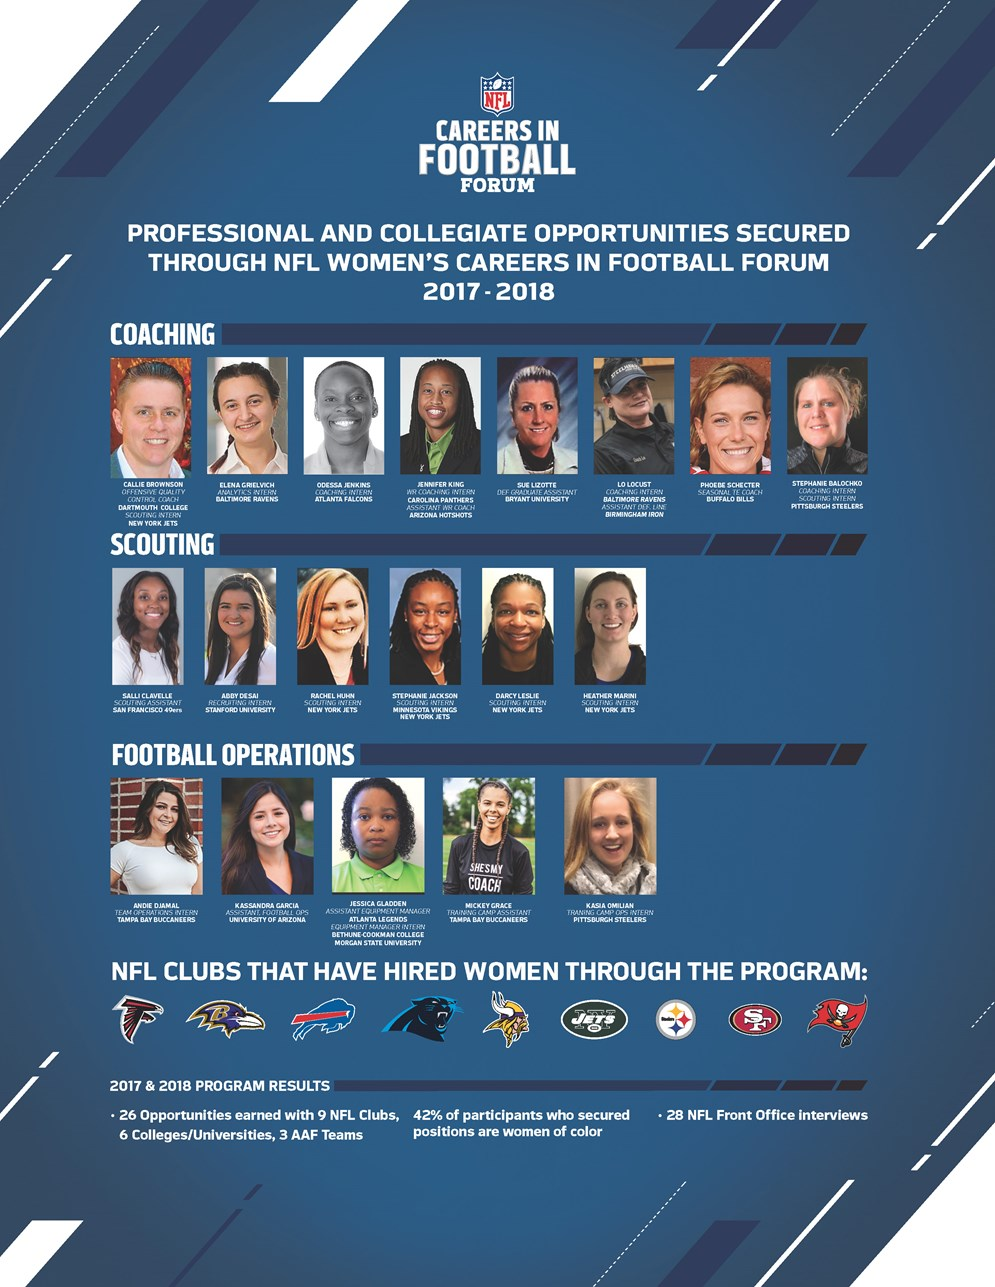 Women's Careers in Football Forum